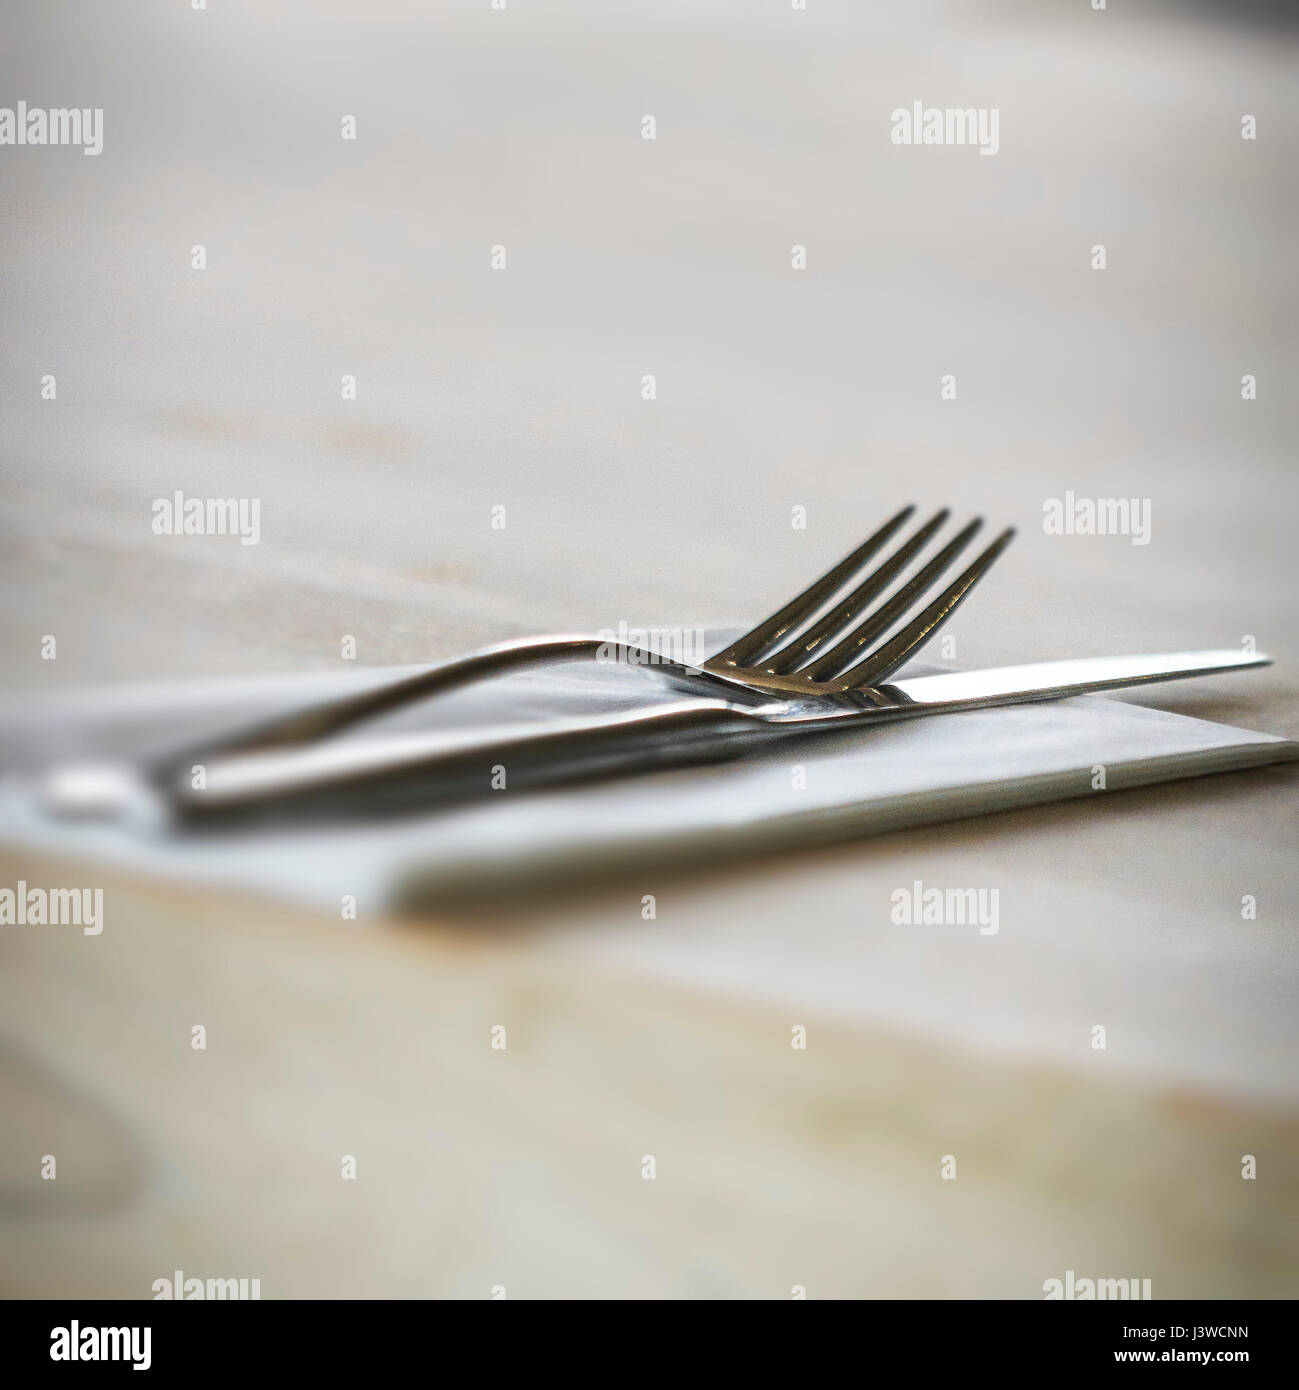 A knife and fork with a napkin Place setting Restaurant Unused - Stock Image